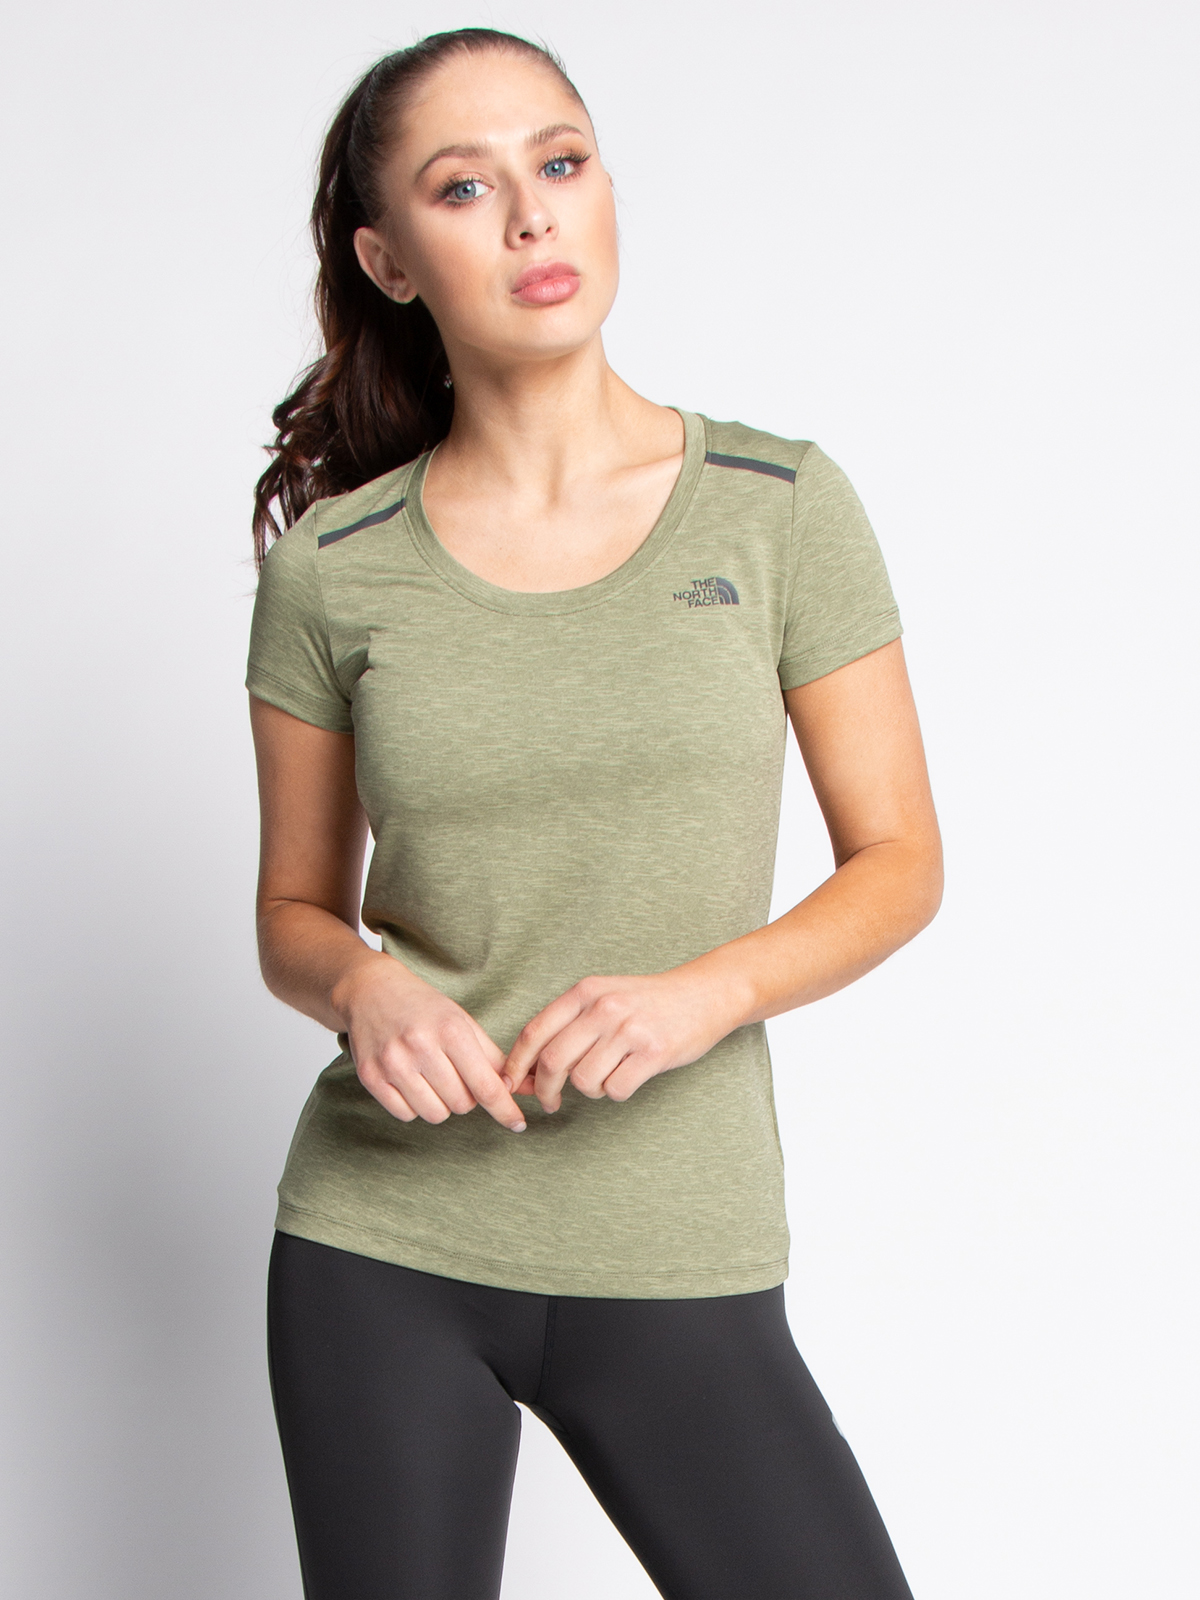 The North Face T-shirt in groen voor Dames, grootte: XL